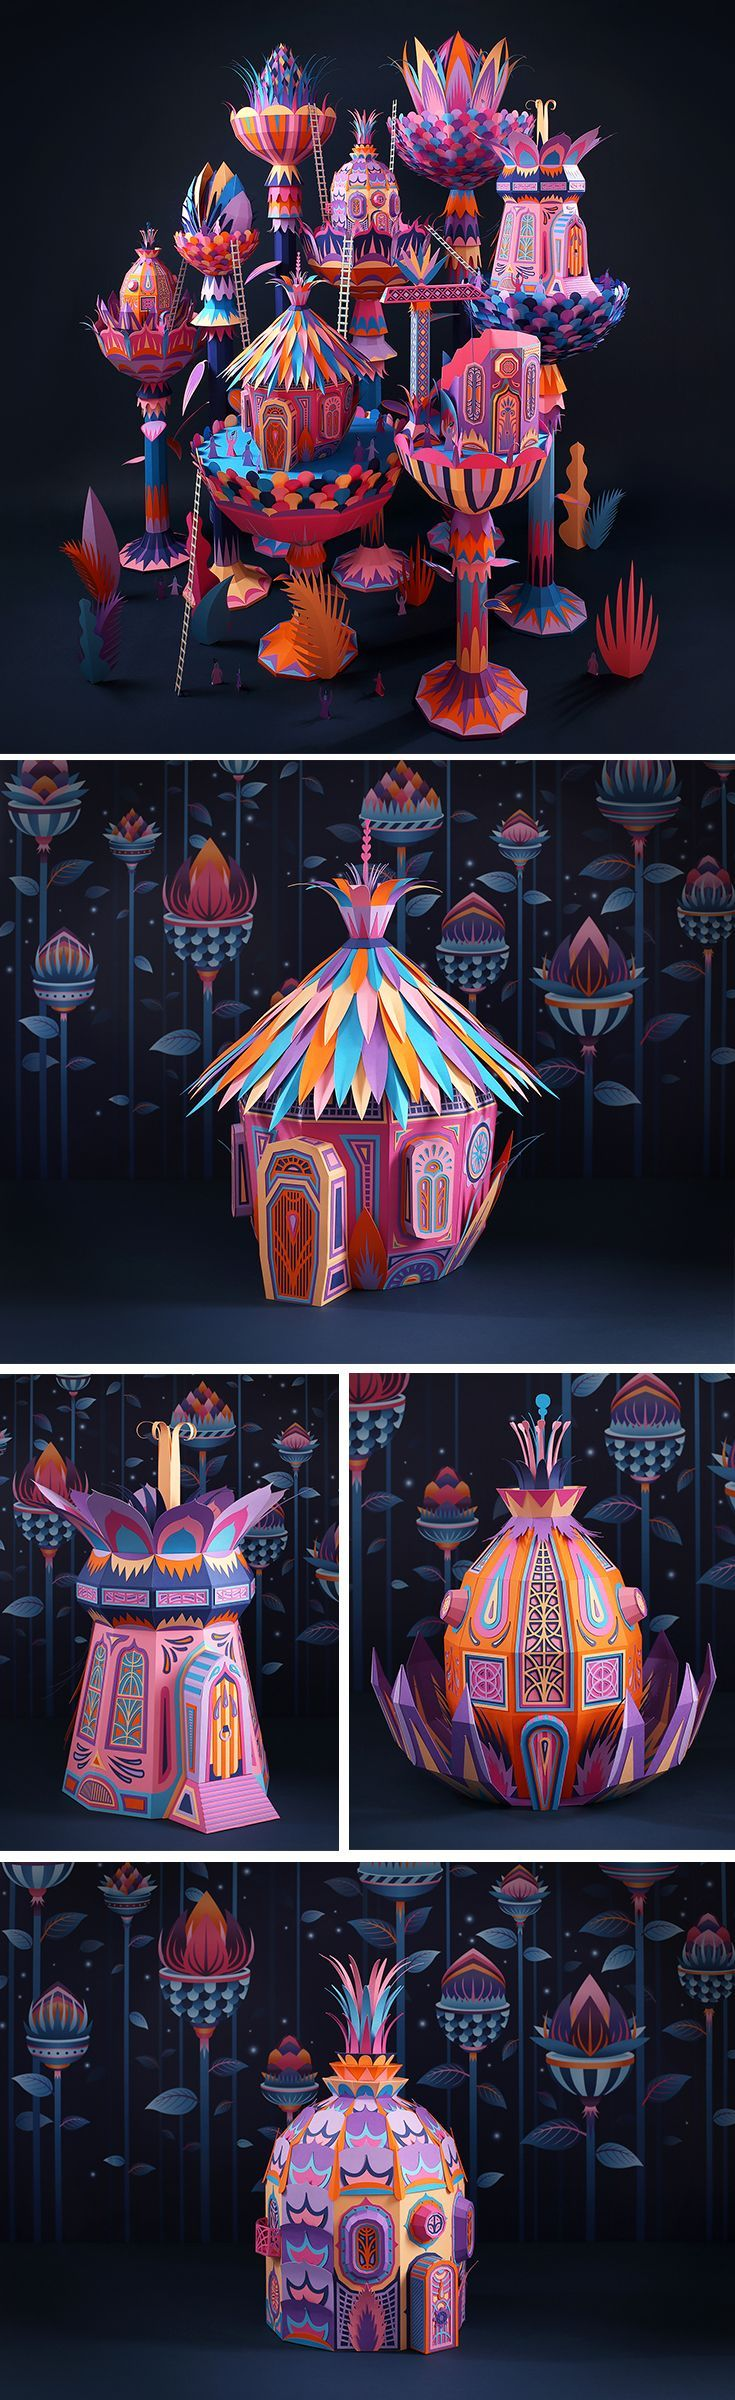 Color art dubai - Fantastic Miniature Worlds Bursting With Color For Herm S Window Display In Dubai Crafted By Zim And Zou